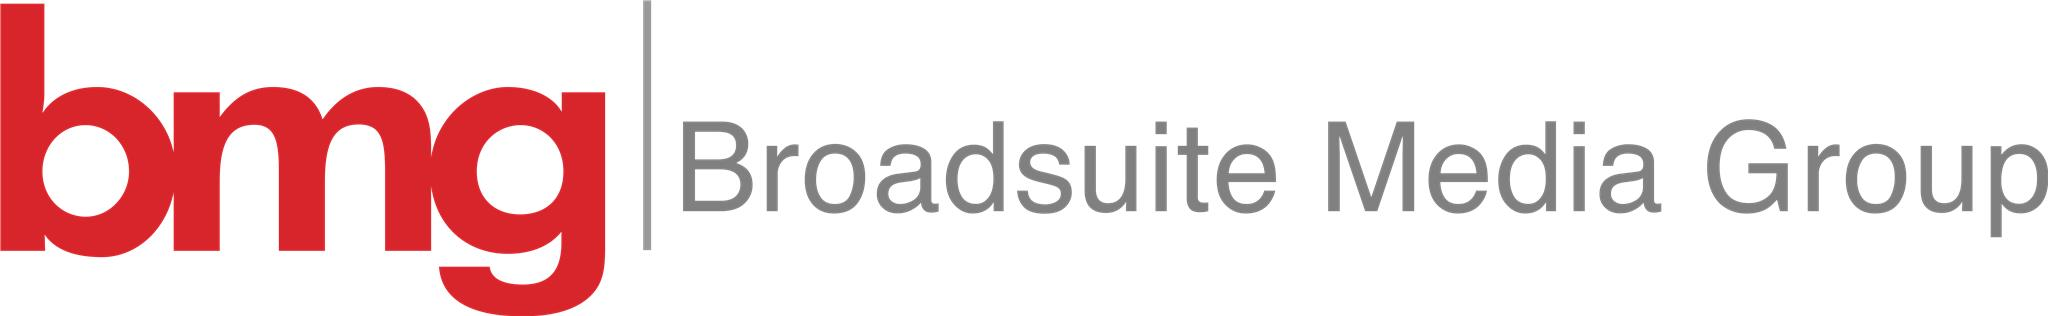 Broadsuite Media Group